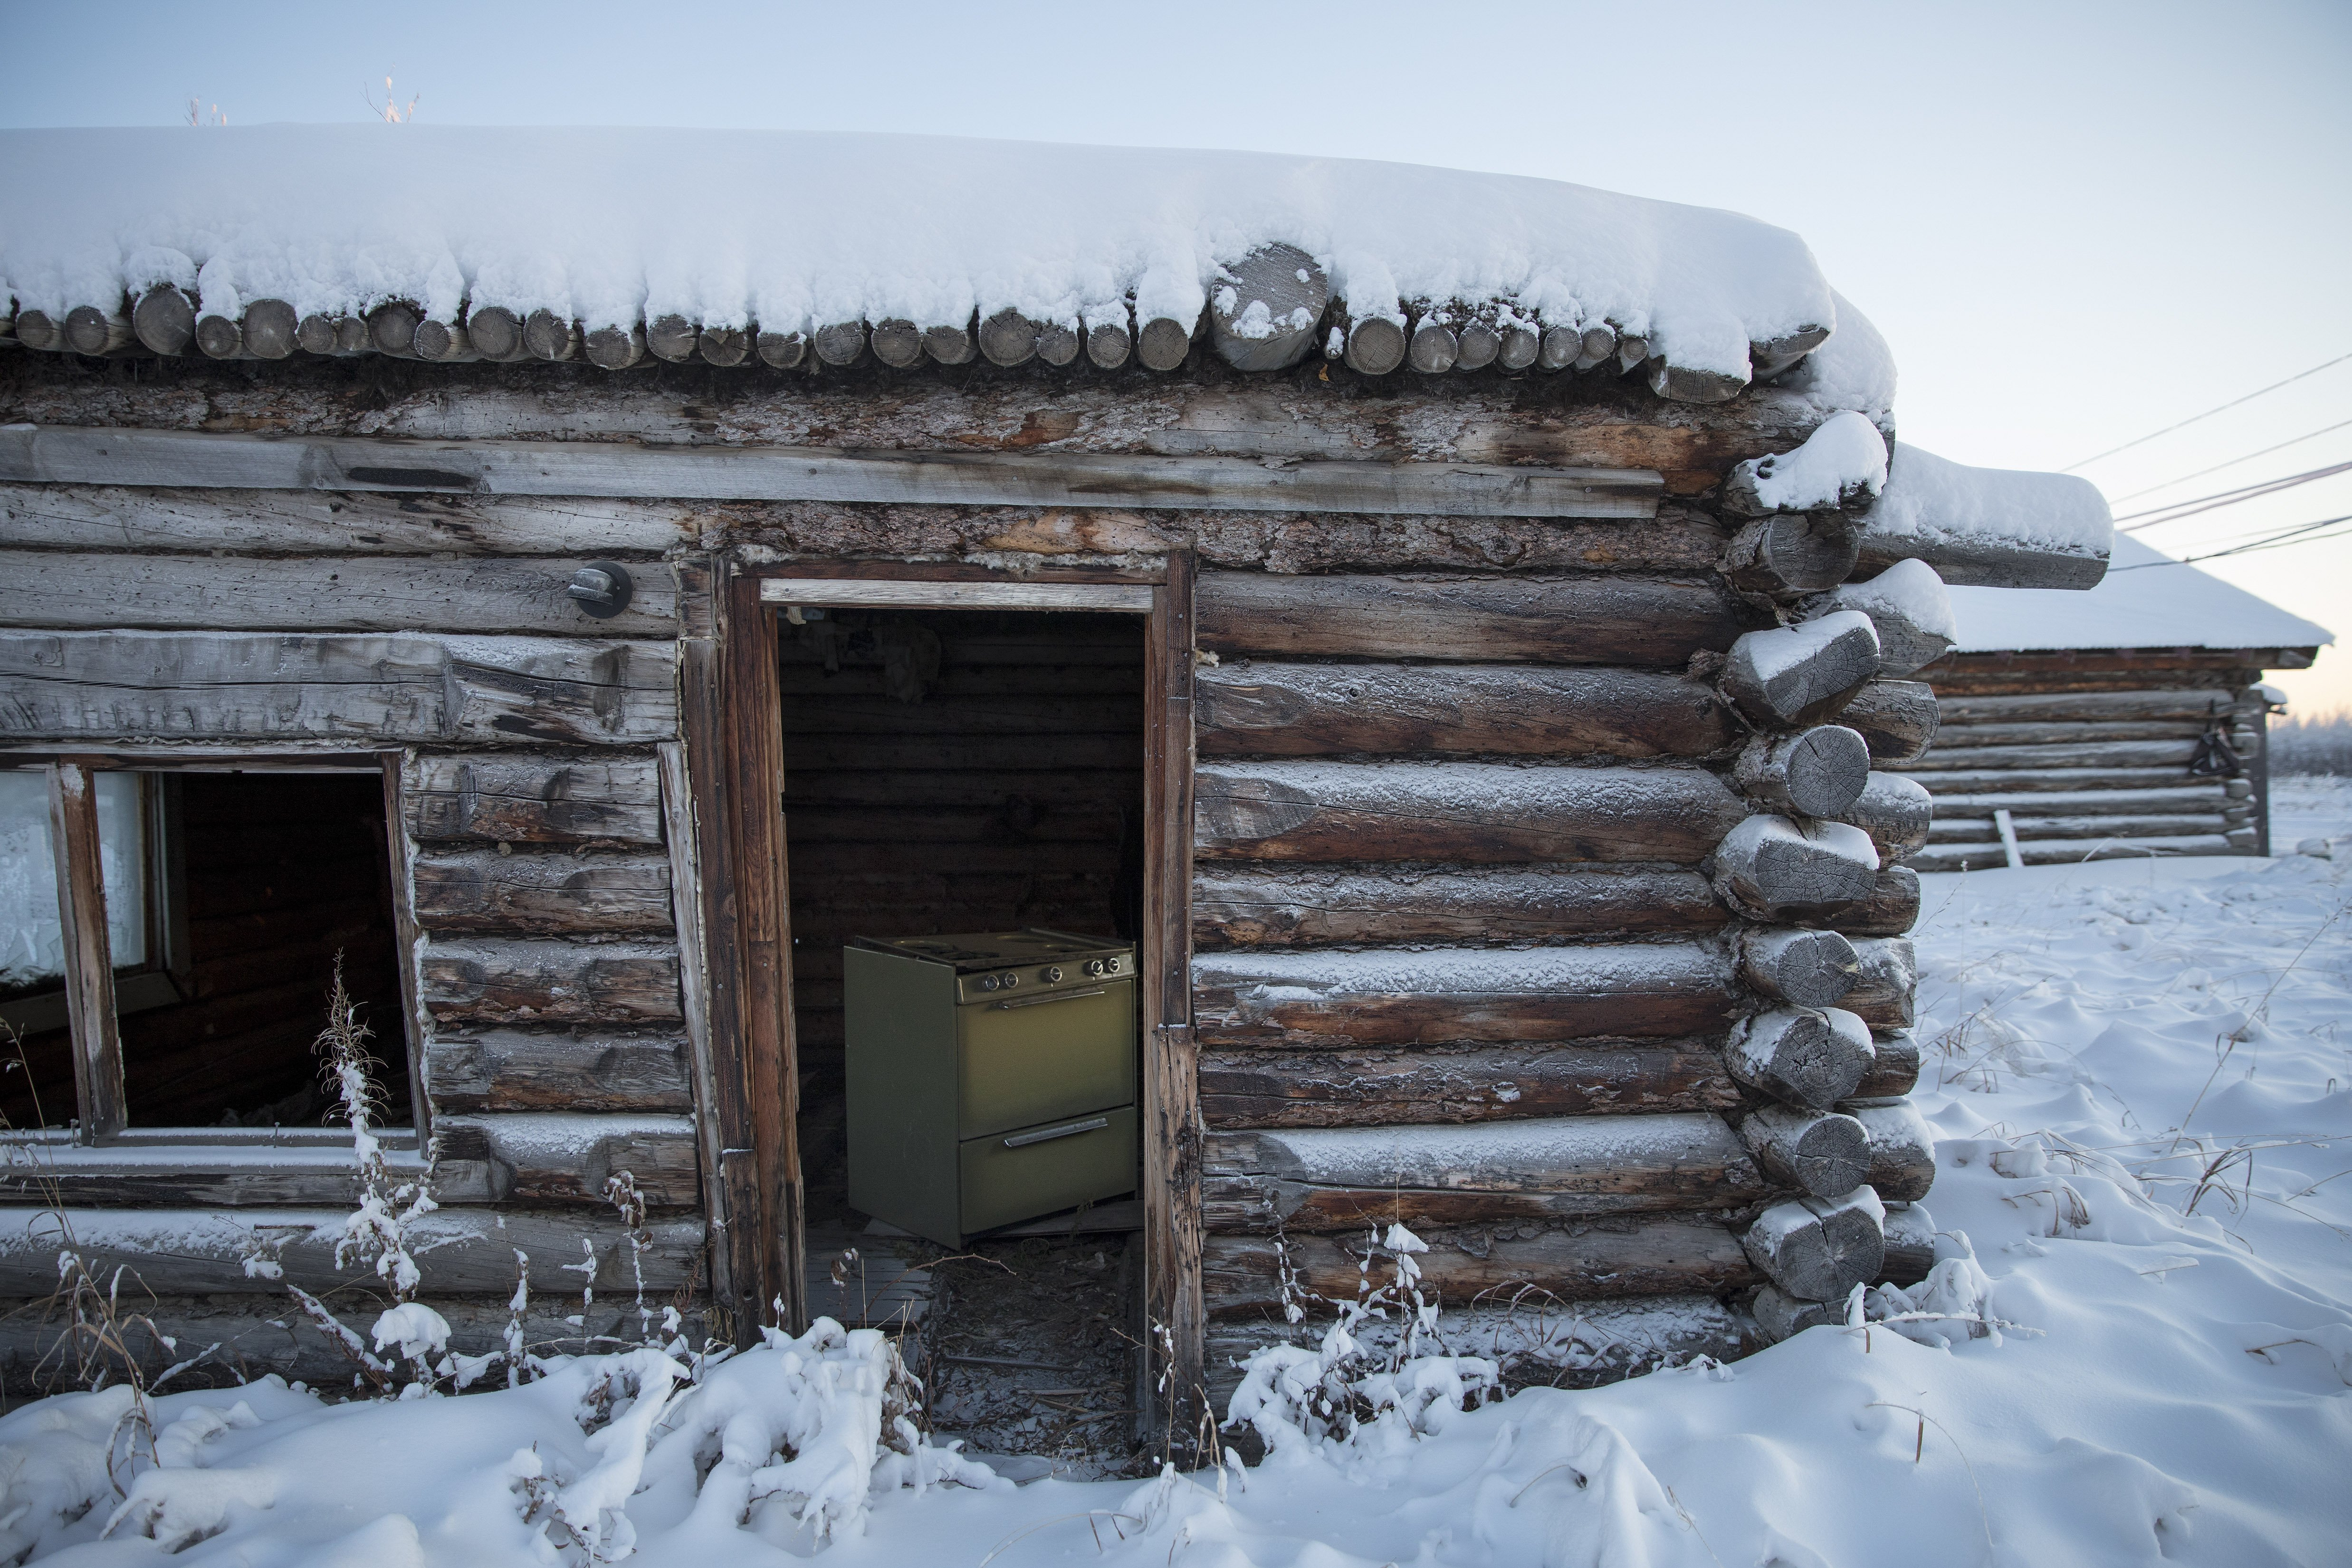 On Alaska's coldest days, a village draws close for warmth